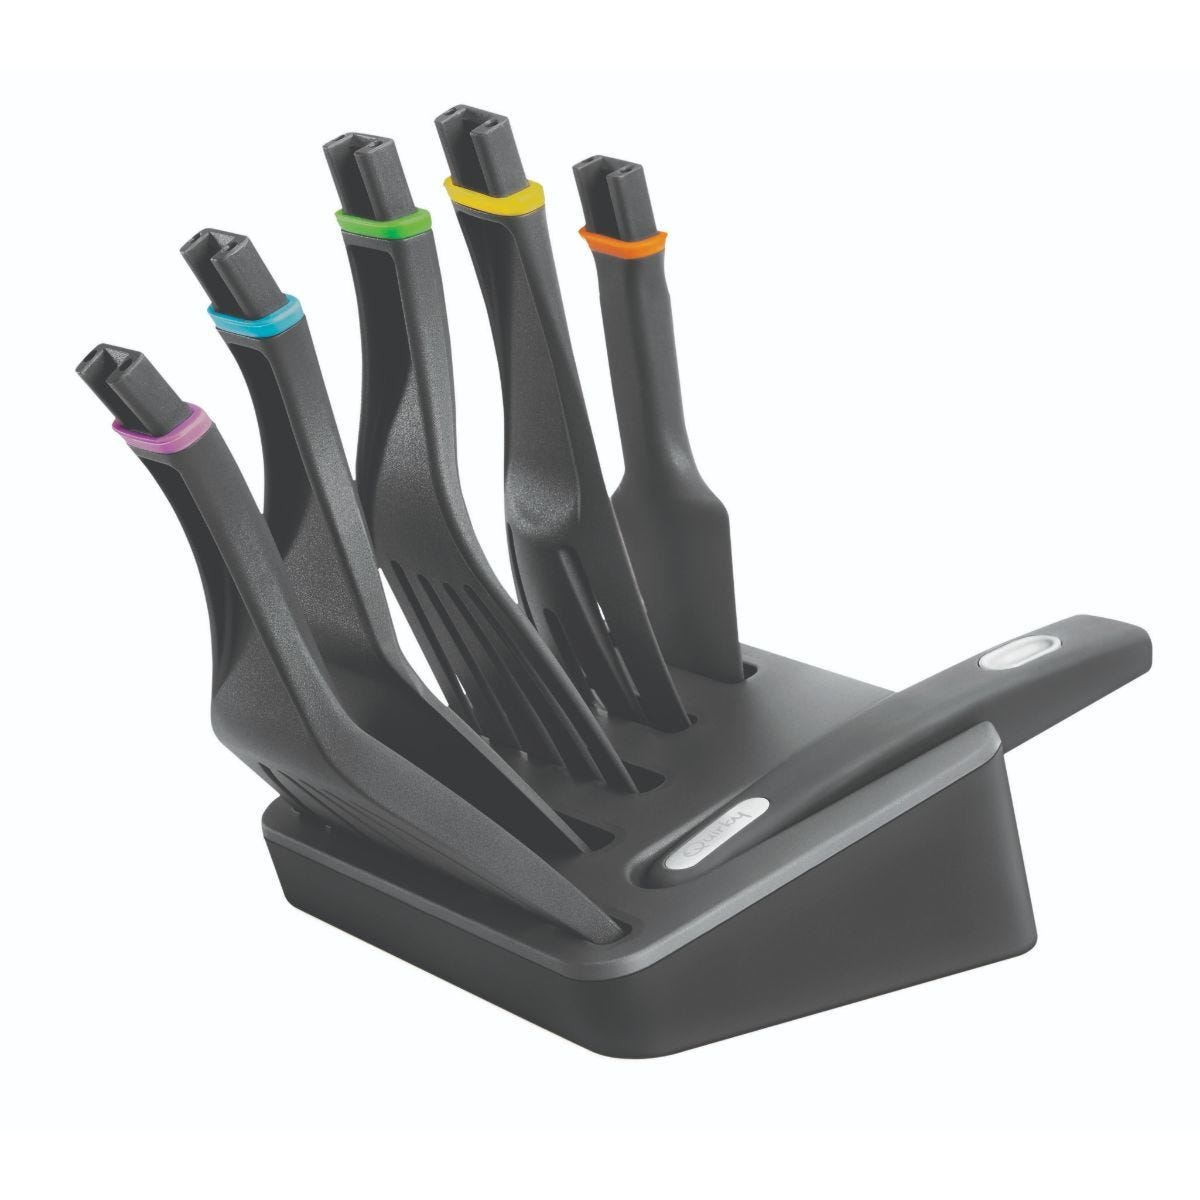 Quirky Click n Cook Detachable Spatula Set